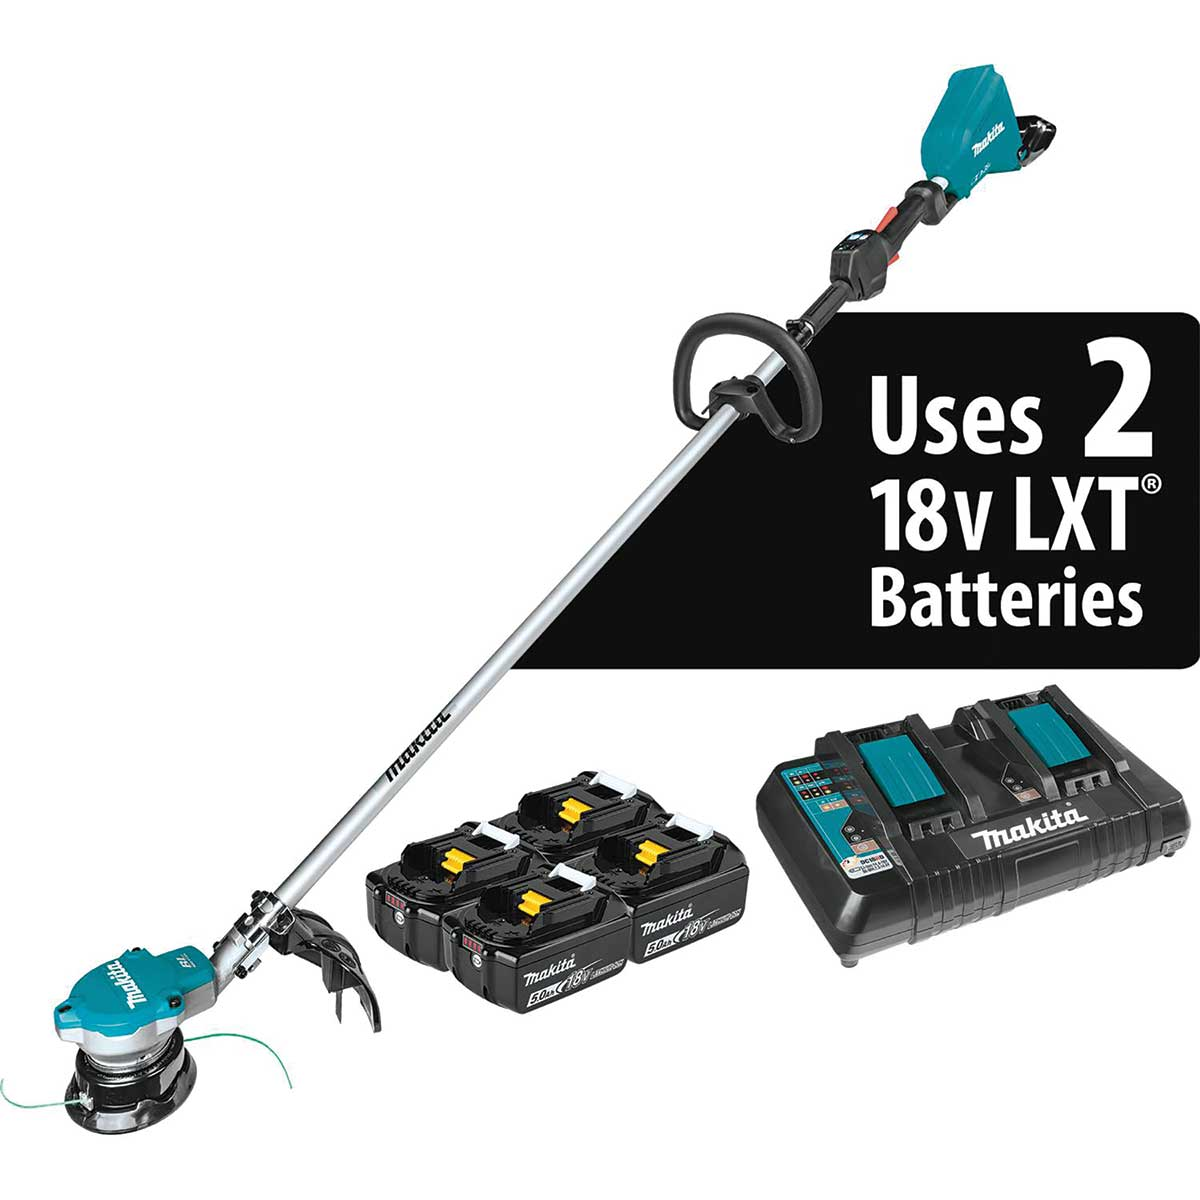 Makita 18V X2 (36V) LXT® Lithium-Ion Brushless Cordless String Trimmer Kit with 4 Batteries (5.0Ah)